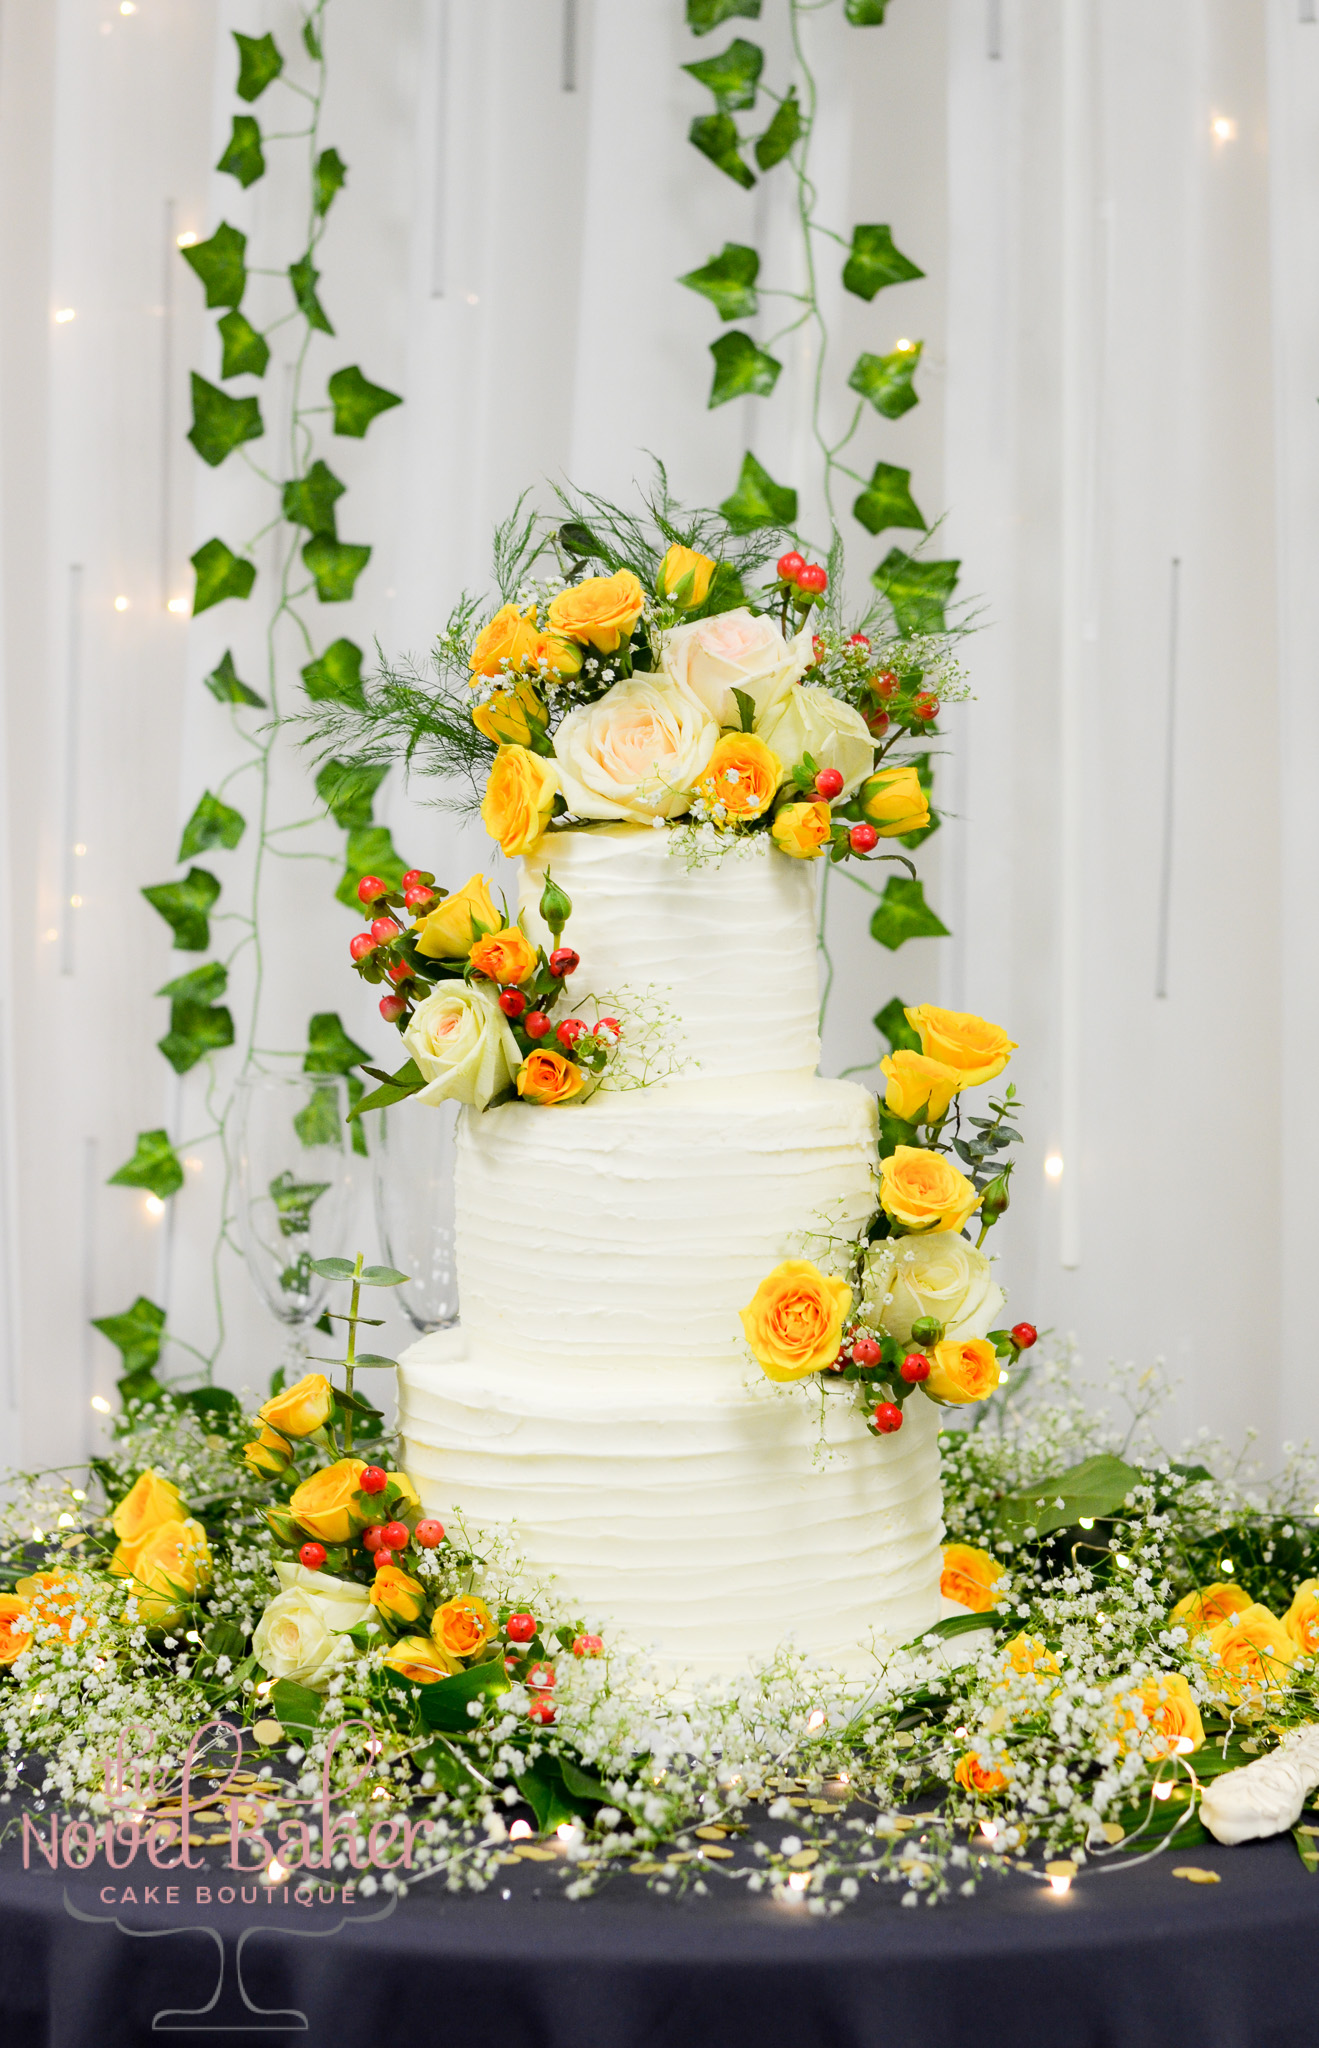 3-Tier Wedding Cake with fresh yellow roses